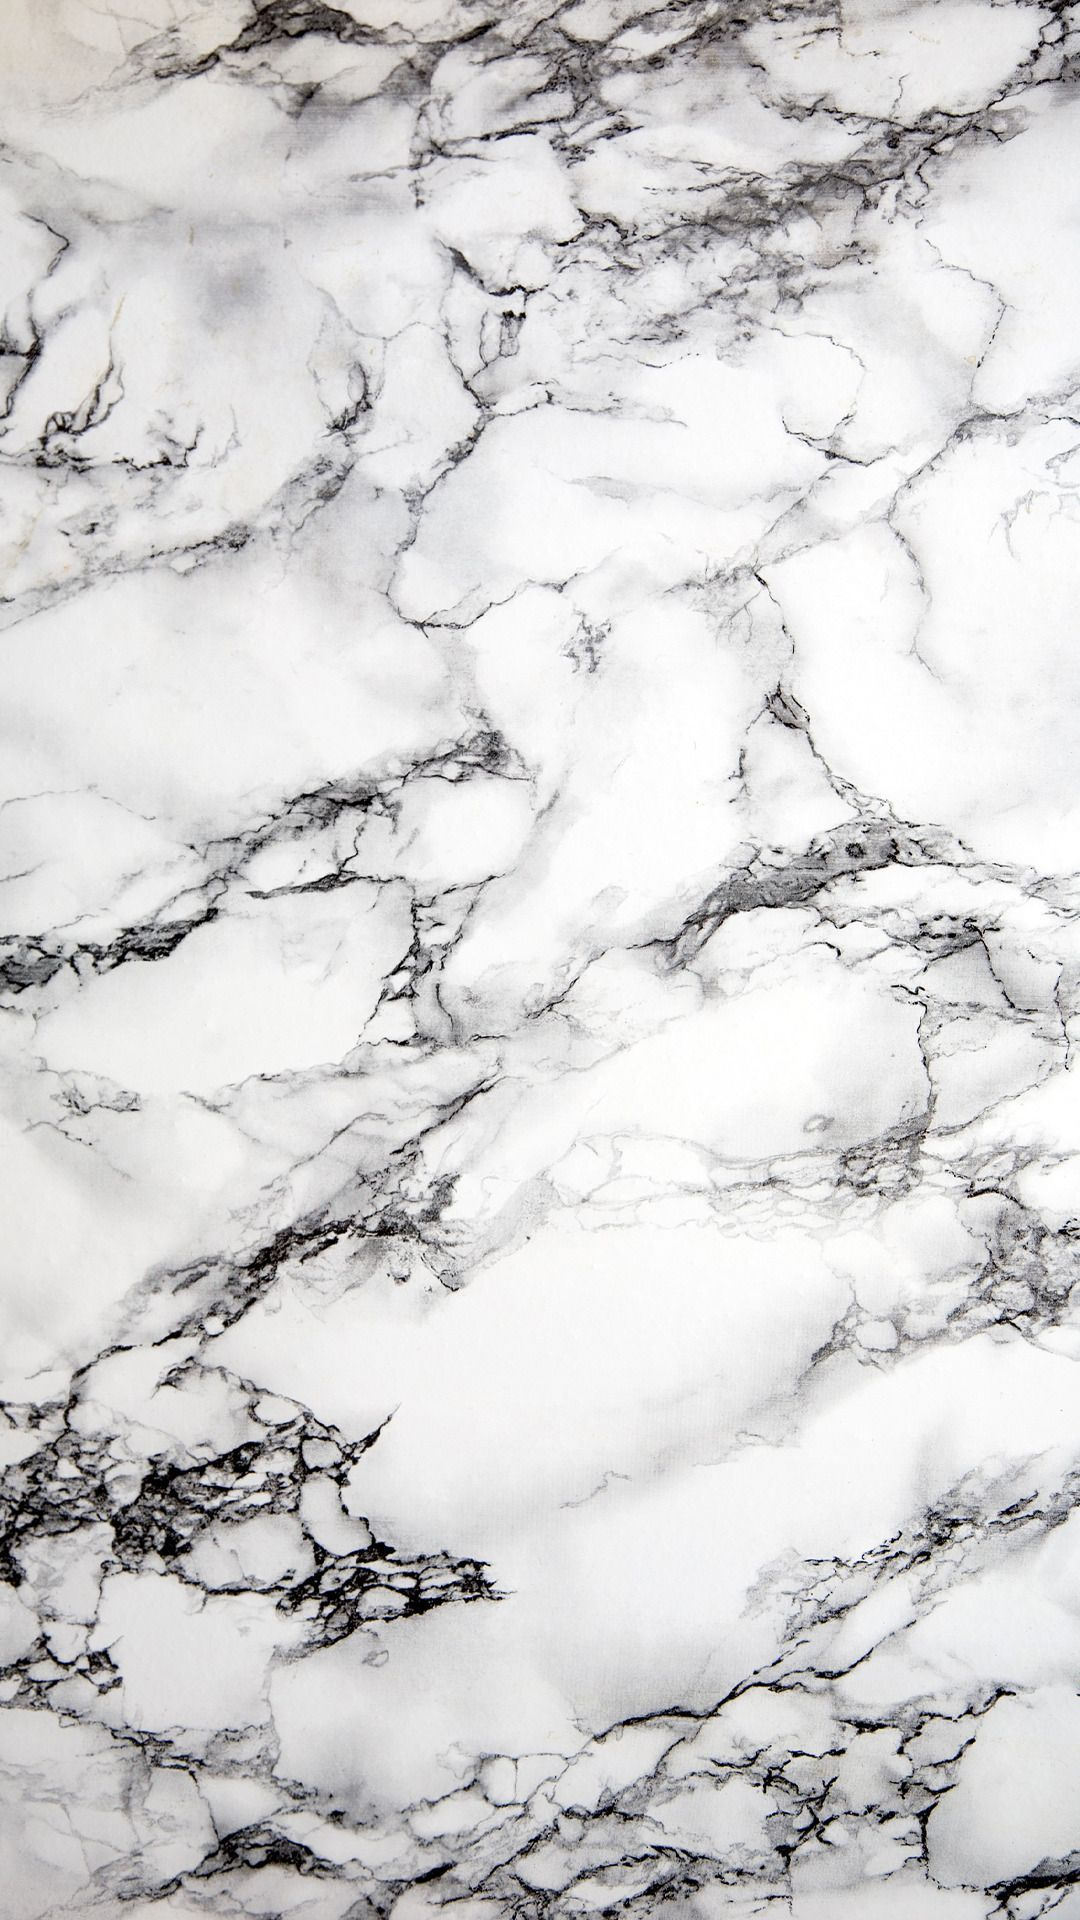 Aesthetic Blue Grey Photo In 2020 White And Gold Wallpaper Marble Iphone Wallpaper Marble Wallpaper